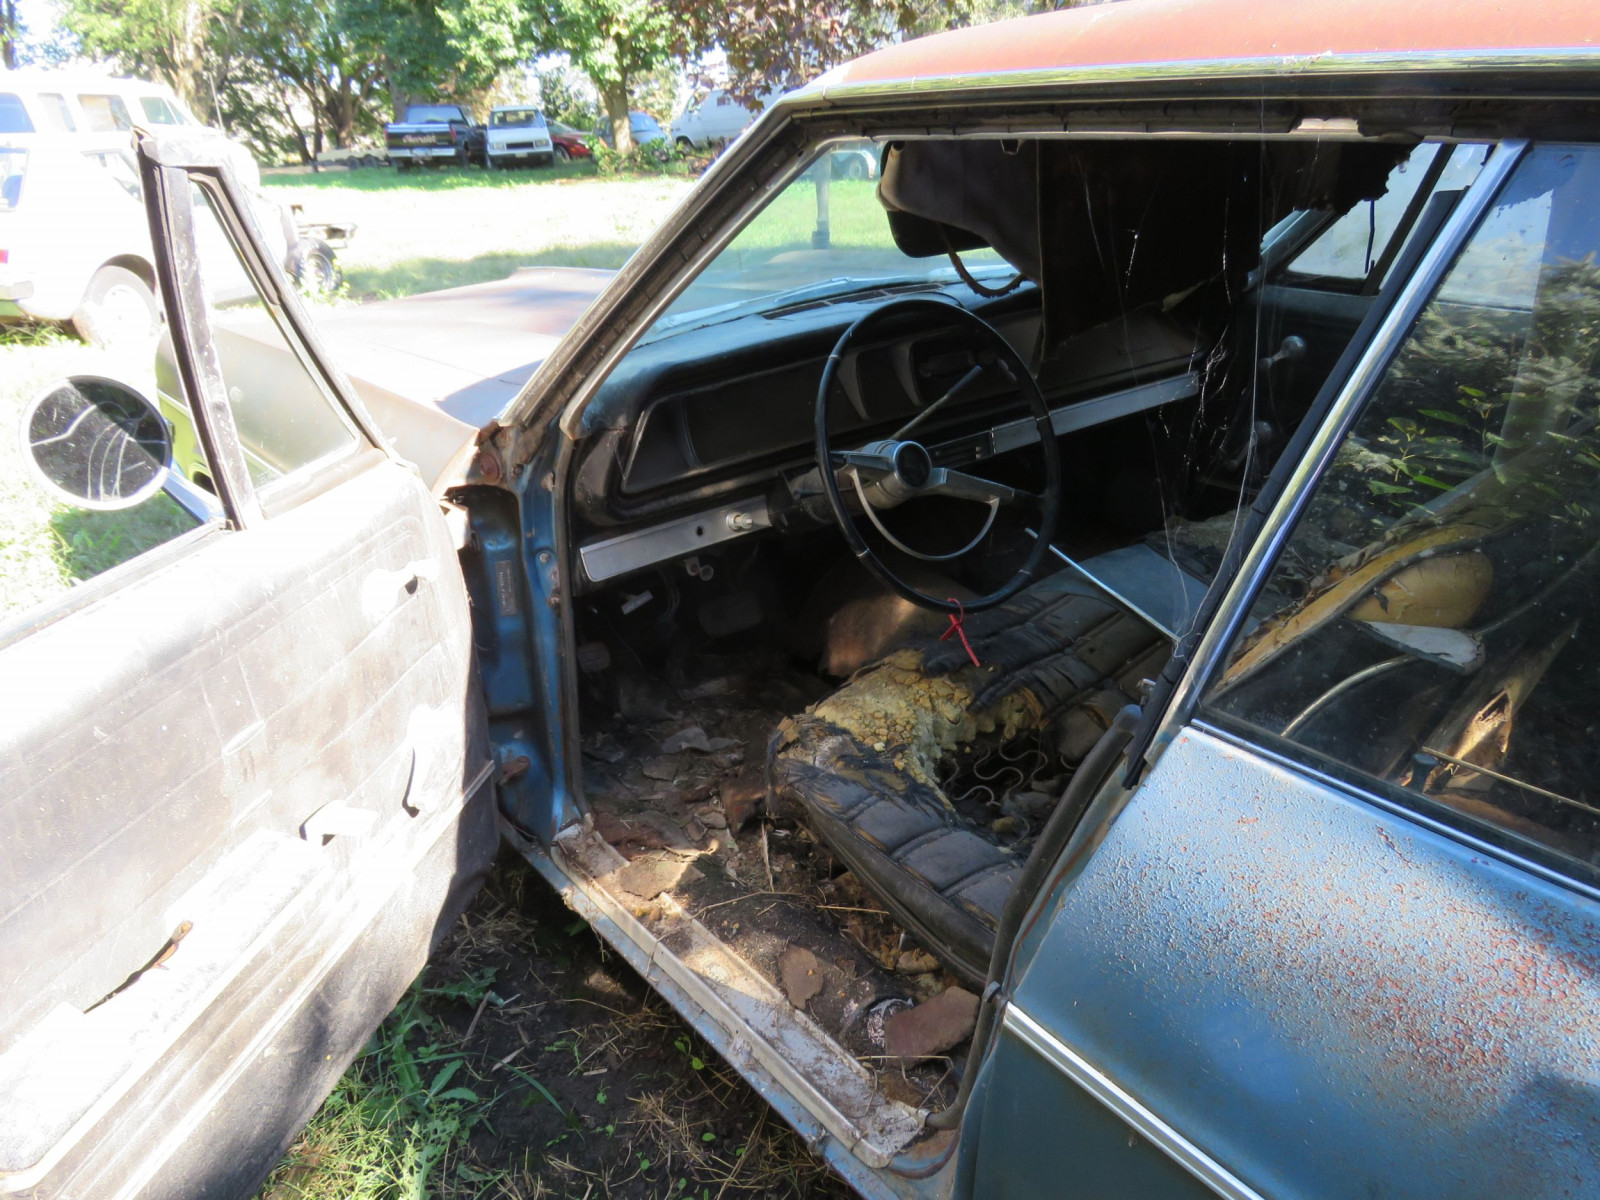 1966 Chevrolet Impala 4dr HT for Project or Parts - Image 4